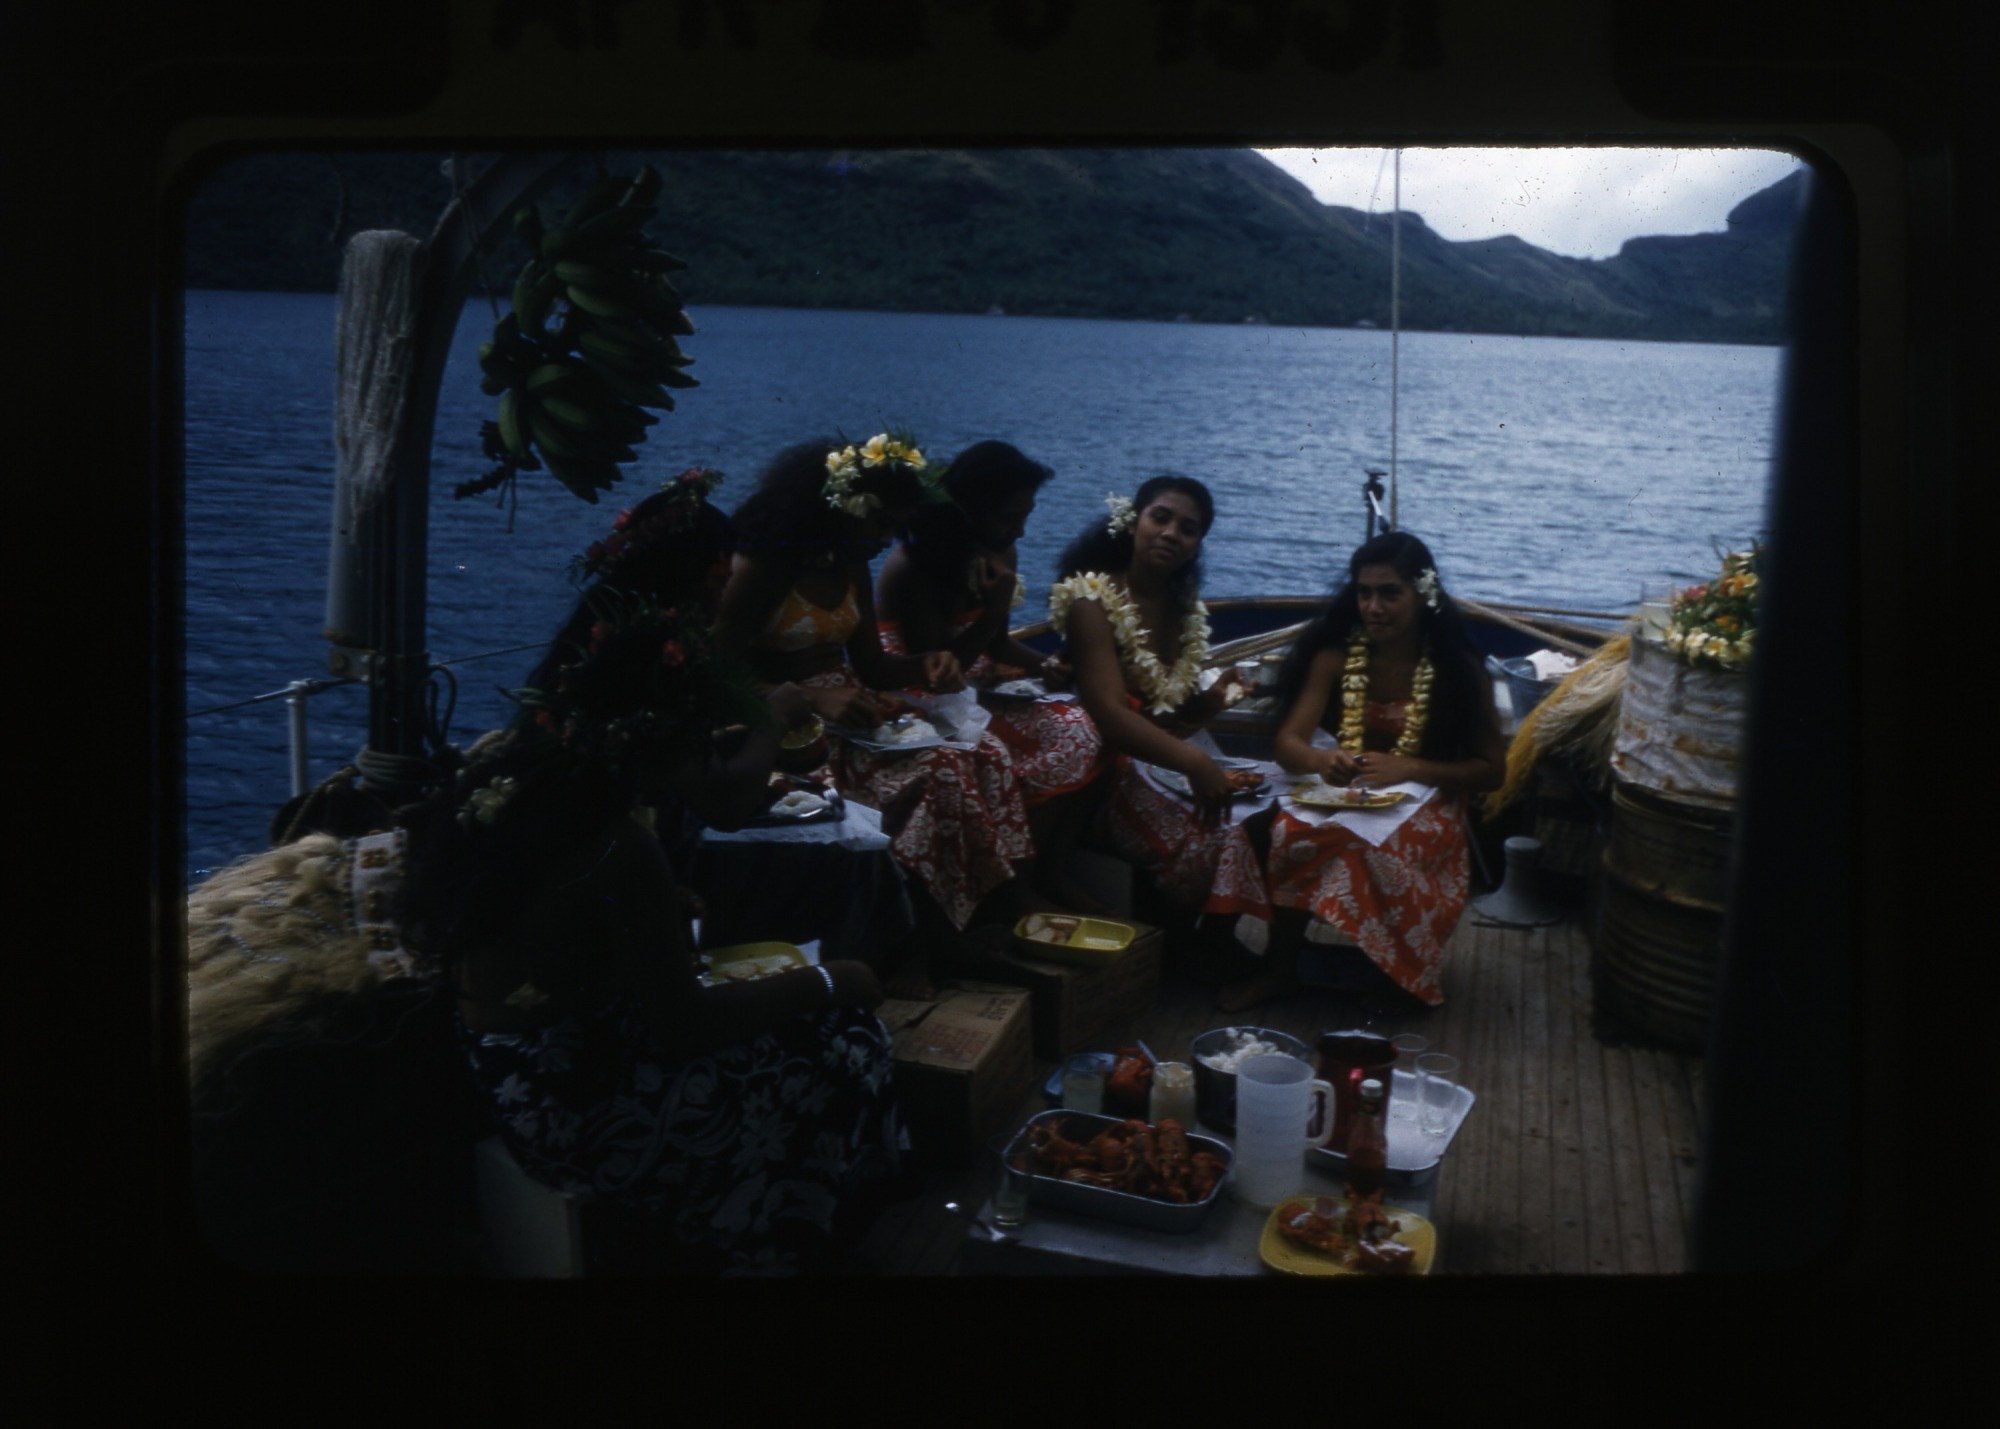 Lunch aboard the vessel Mureva, with dancers from Bora Bora (in local dance competition) consuming lobster, 1957